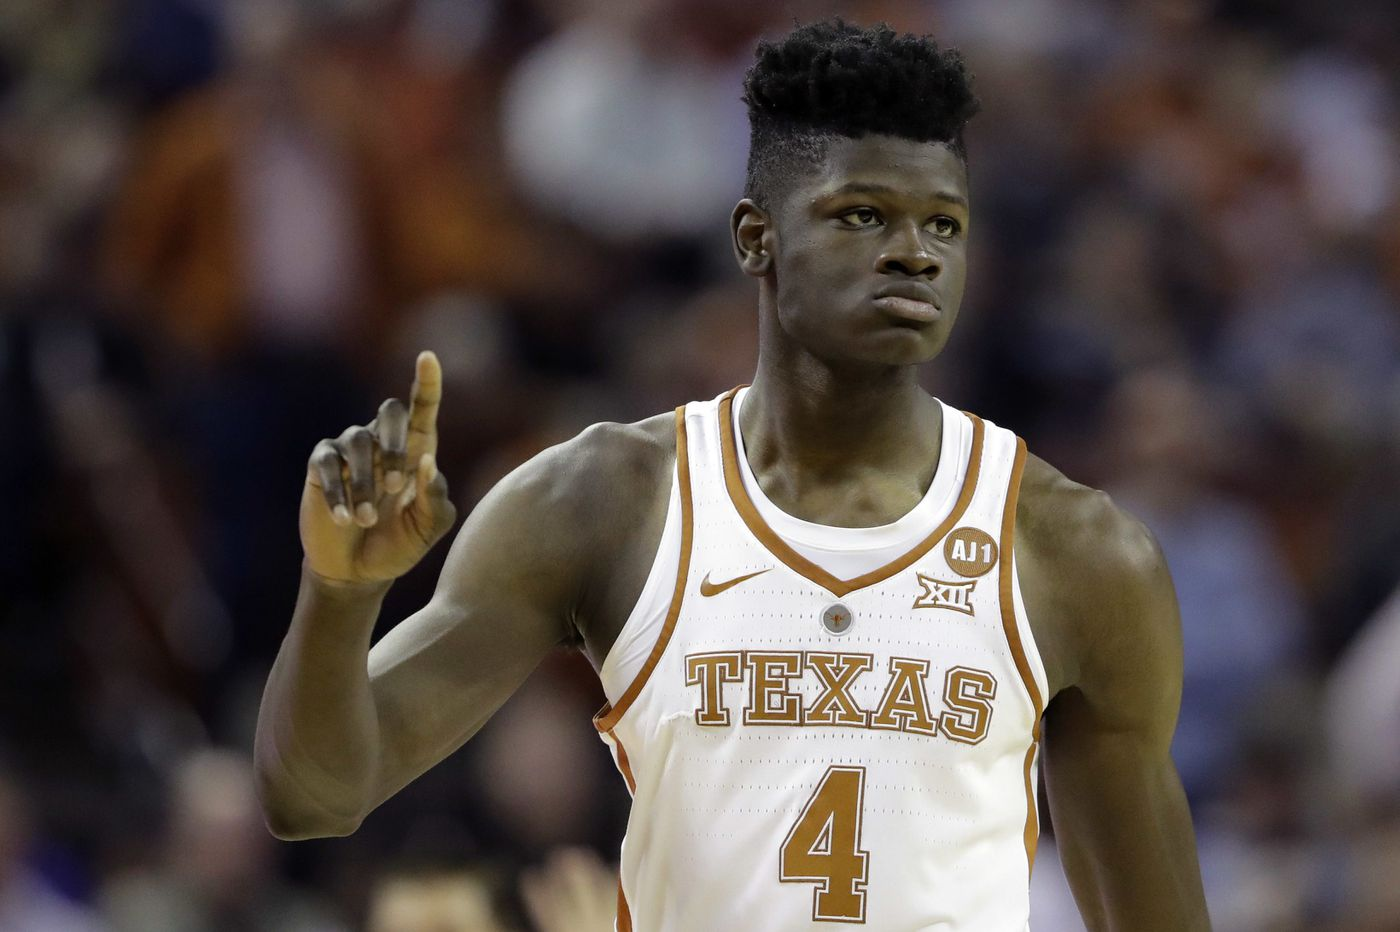 NBA draft: Mo Bamba, Lonnie Walker and other local players to watch